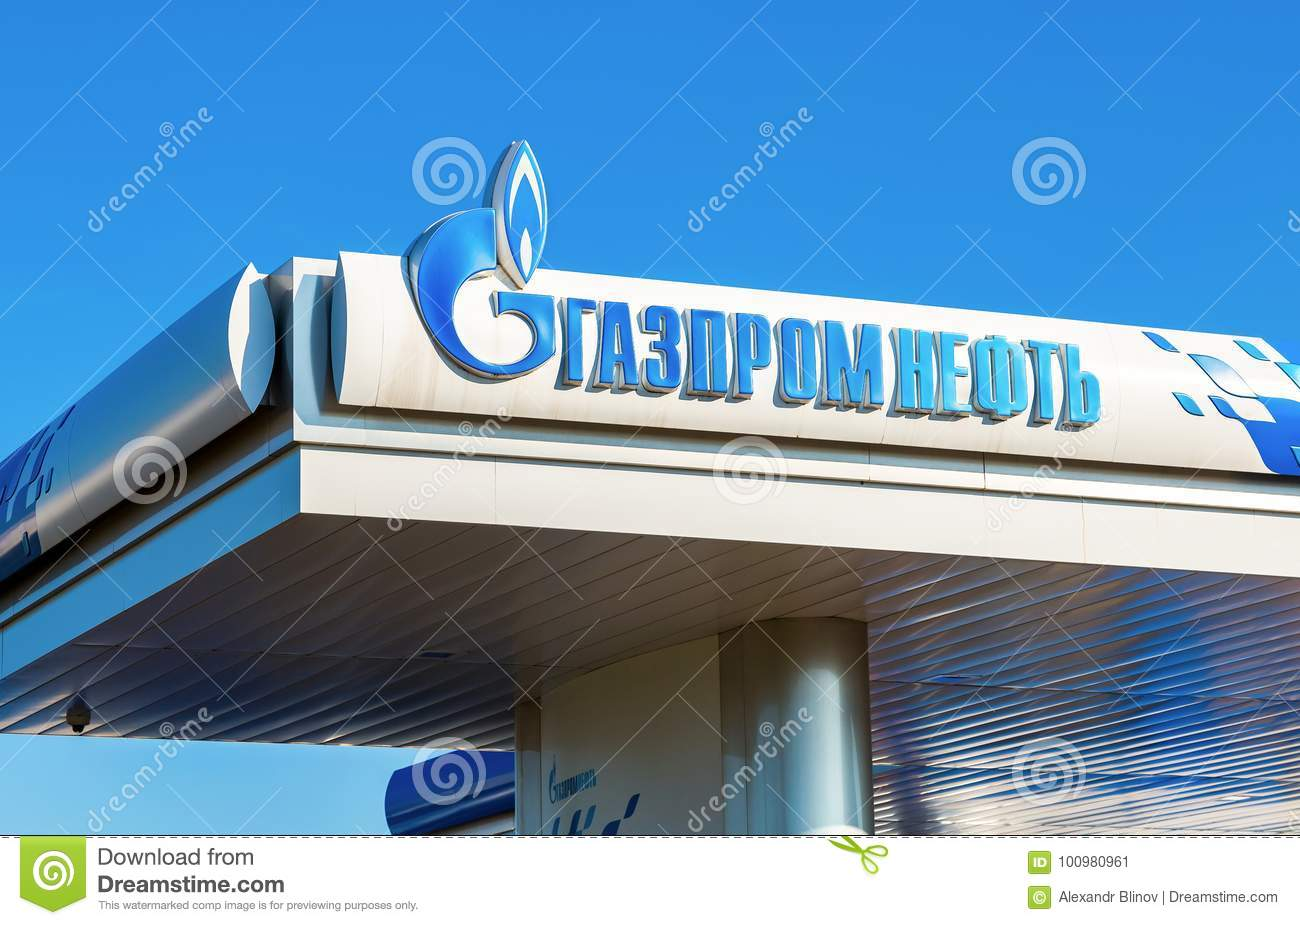 Gas Companies In Ga >> The Emblem Of The Oil Company Gazpromneft On The Gas Station